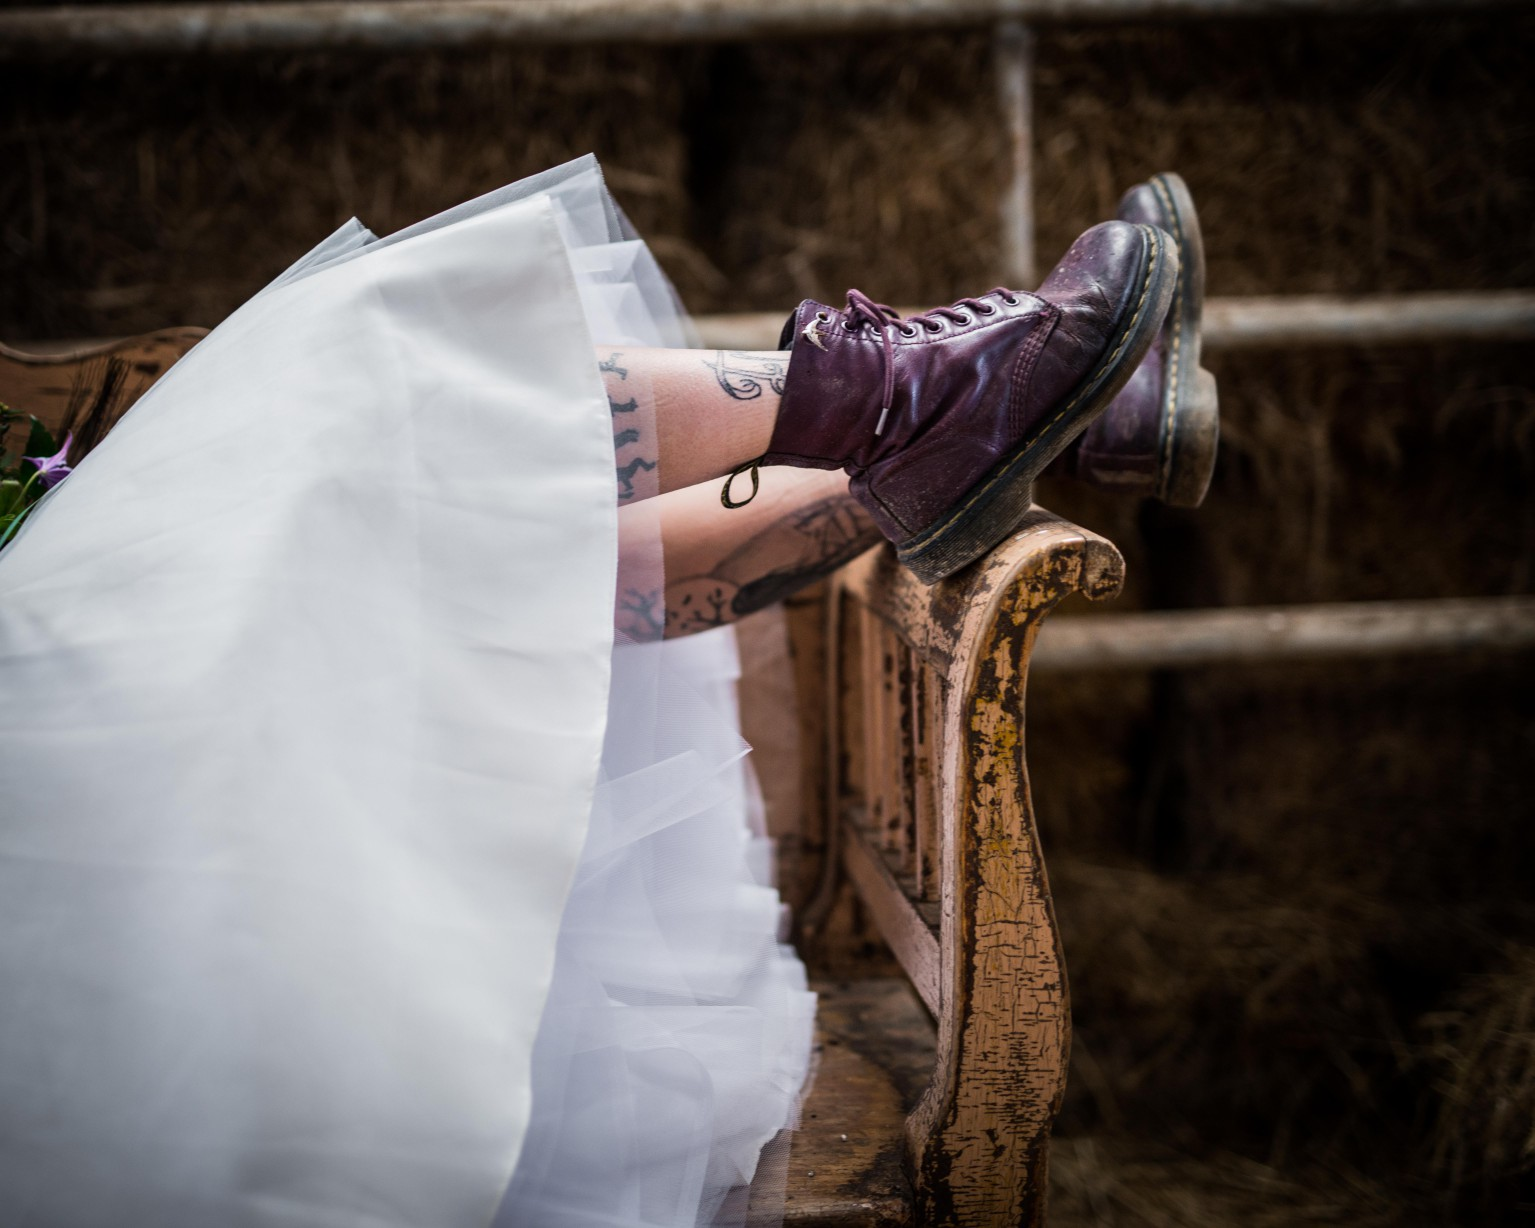 Peacock barns - alternative unconventional wedding photoshoot - rustic decadent - purple DM's - bride